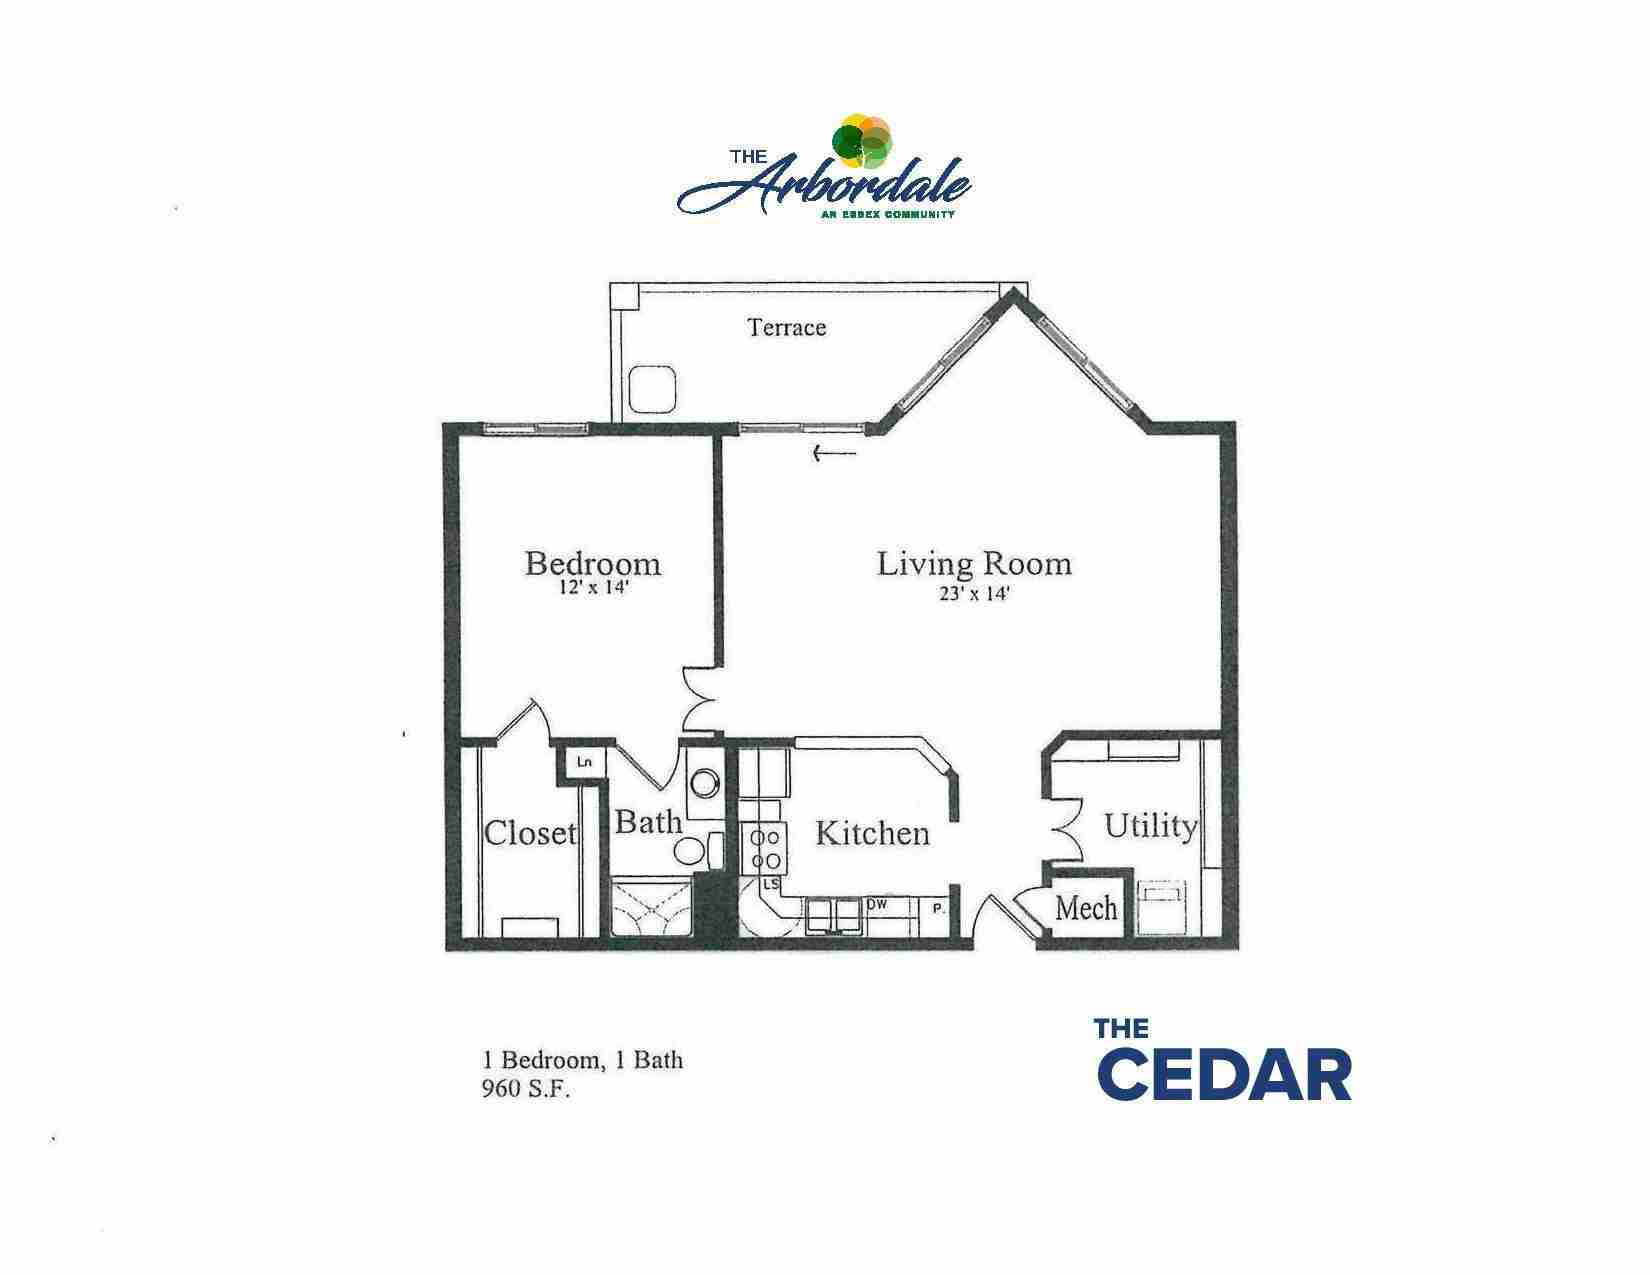 the cedar floor plan, 1 bedroom, 1 bath, 960 sq ft